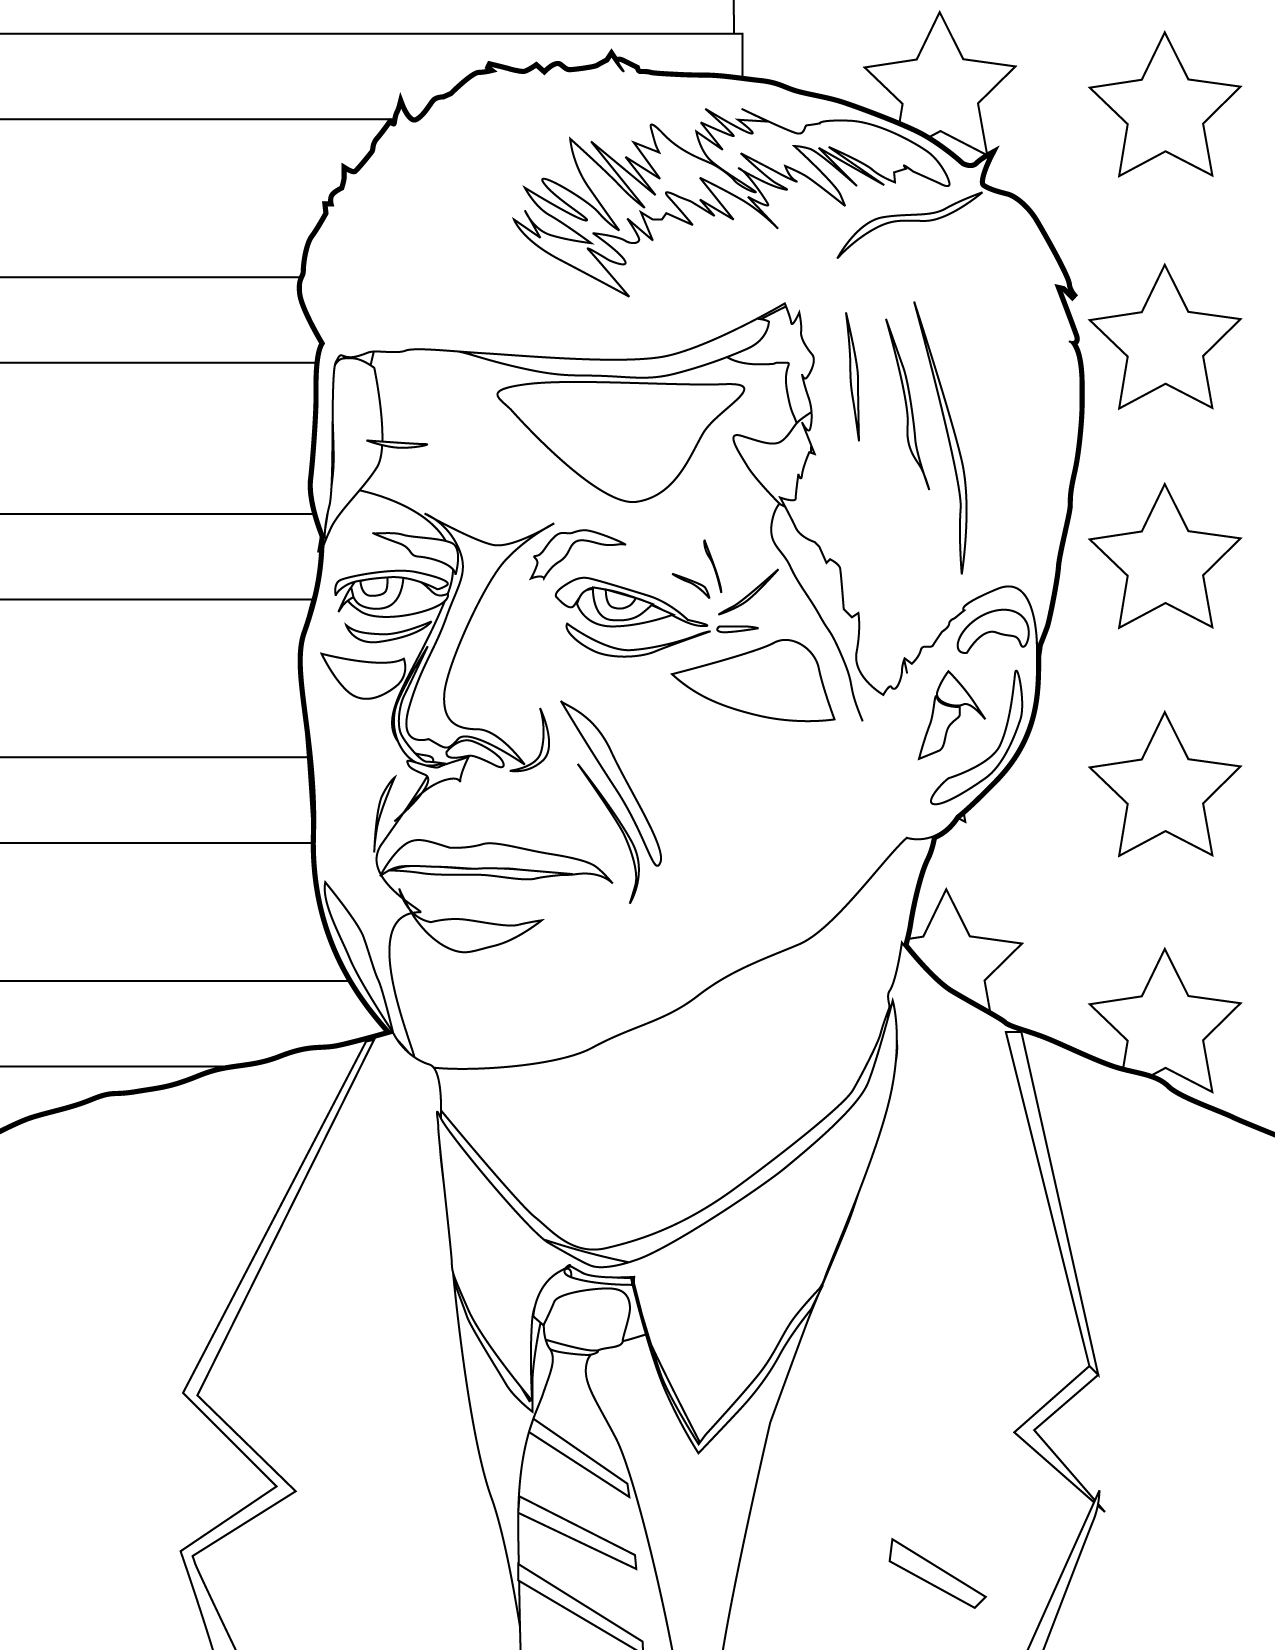 Coloring Pages Us Presidents Coloring Pages john f kennedy coloring page handipoints us presidents pages kennedy